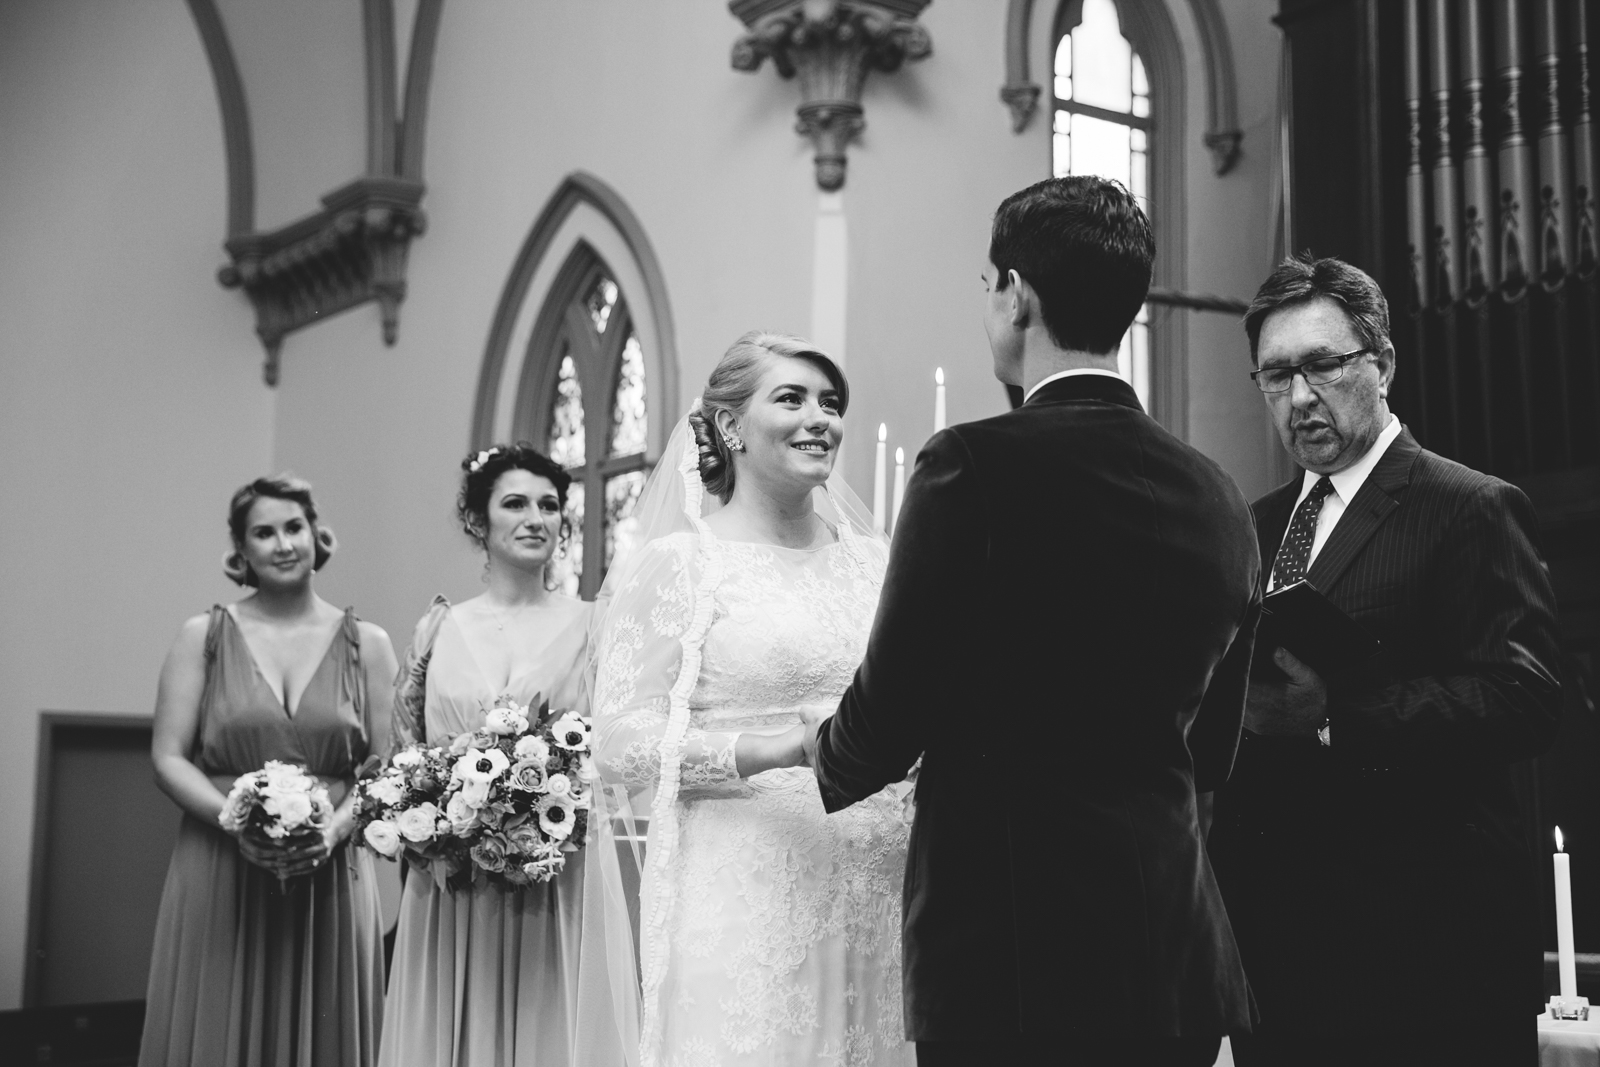 richmondvaweddingphotography-75.jpg